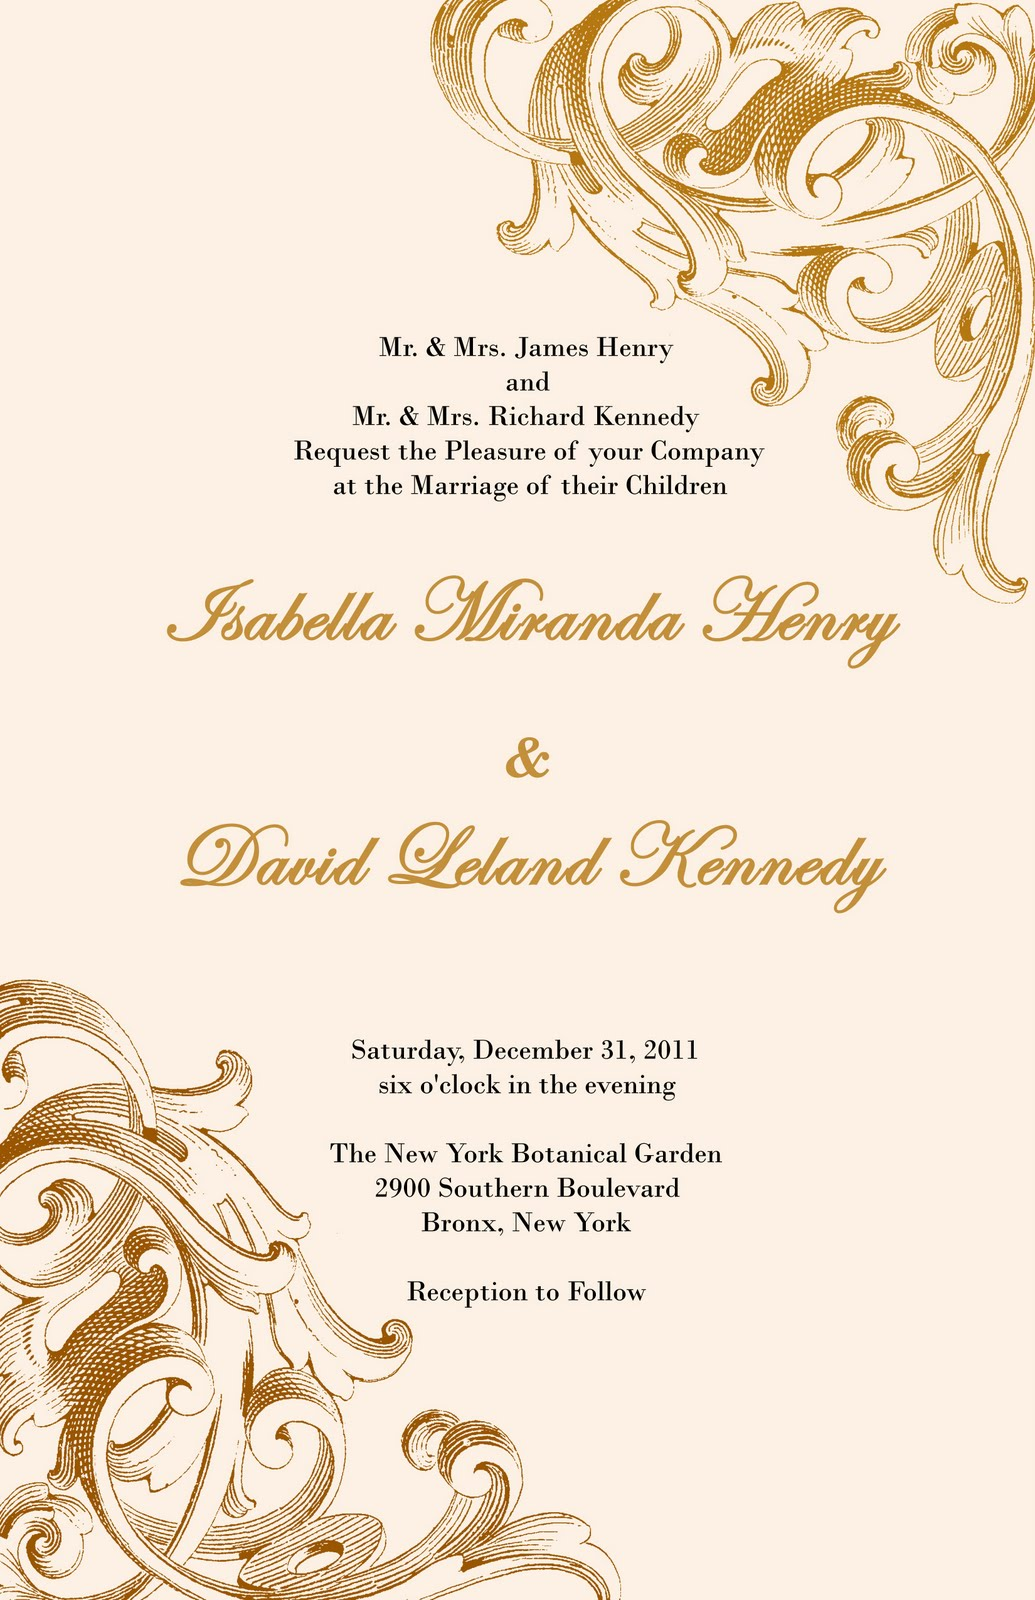 Wedding Invitation Design Online is the best ideas you have to choose for invitation example